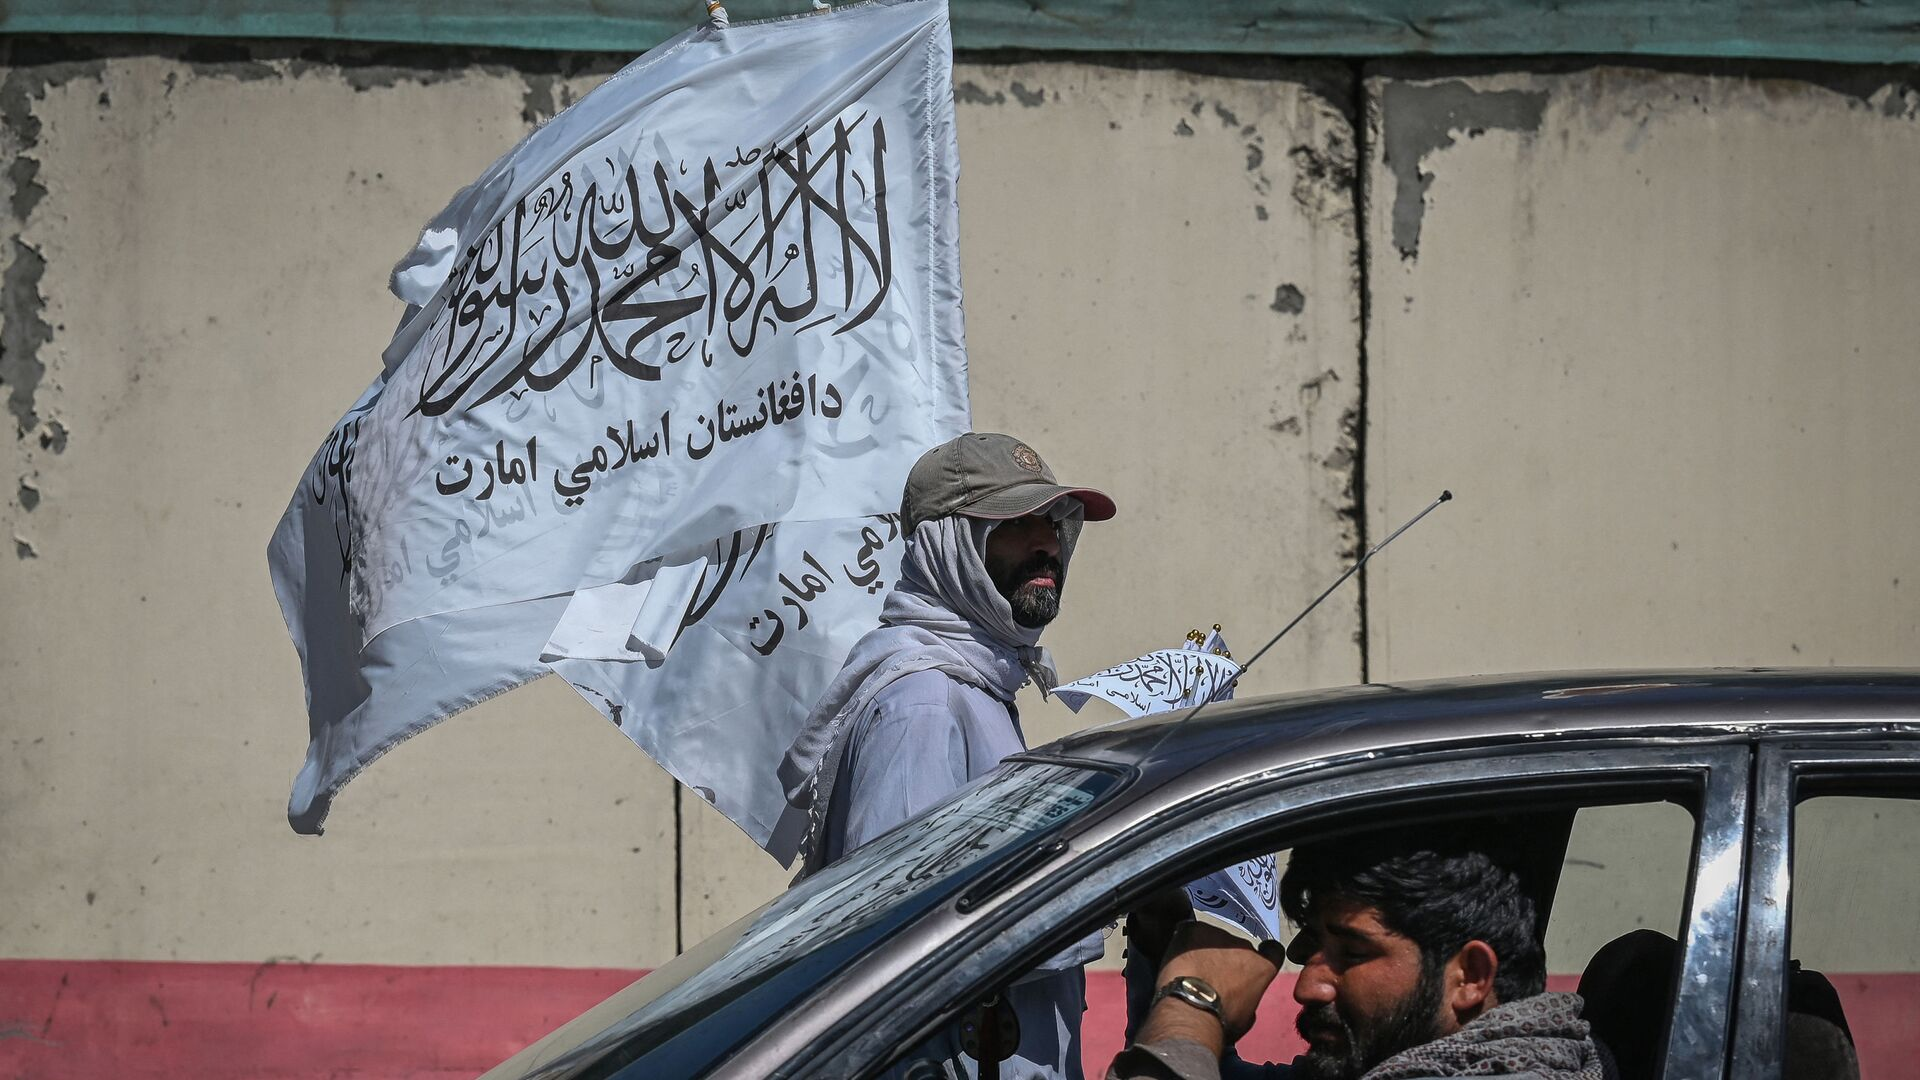 A mobile hawker carries Taliban flags as commuters make their way along a road in Kabul on September 5, 2021.  - Sputnik International, 1920, 06.09.2021